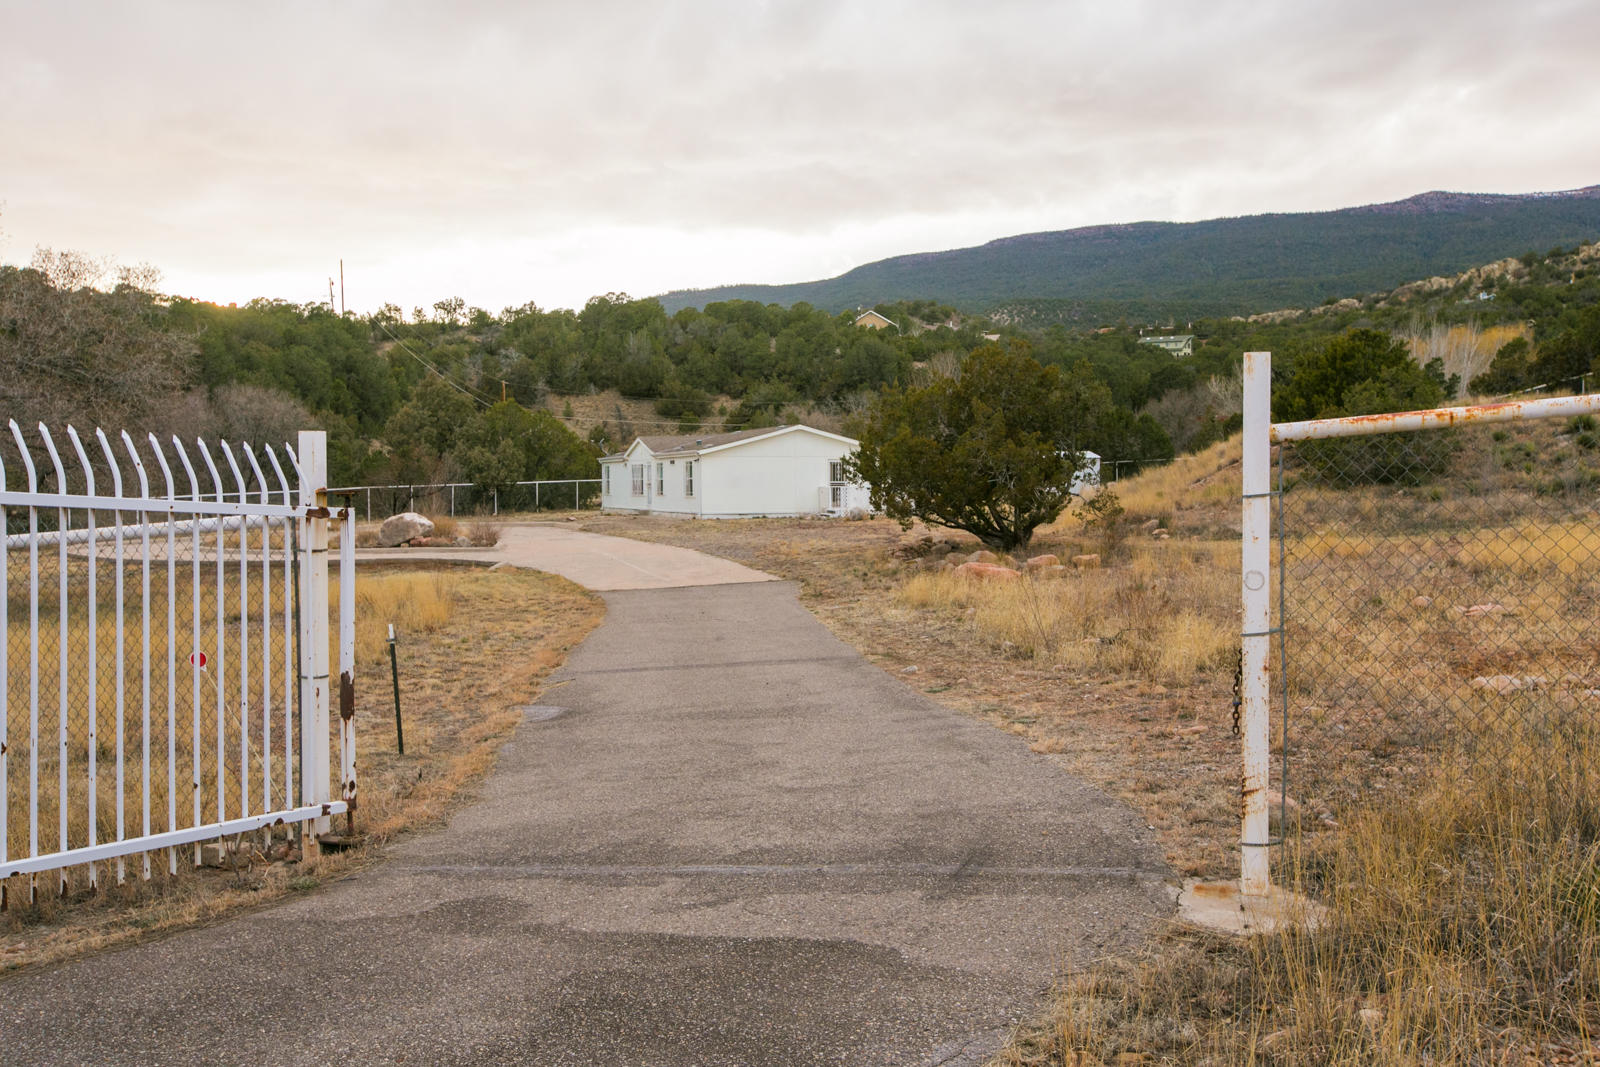 Now is your chance to own a piece of Mountain Tranquility tucked in quiet valley while only 8 min to Albuquerque. LIGHT & AIRY Open Floor-plan with vaulted ceilings and skylights, 2 living areas 2.3 acres with trees and meadow, equipped with irrigation well and CITY WATER. 4BR/2BA maintained home needing a some updates. Formal Liv Area, Spacious Greatrm/Den, Pantry, ample storage, Breakfast Bar/Nook, Utility room with WATER SOFTENER and W/D, Large Master Suite,Garden Tub/Sep Shwr, 4th Add'l Bedrm/Office could be INLAW quarters with separate entrance. New septic, New well equipment, everything is up to code. Inspections complete & ready to go! There is so much potential just waiting for you.